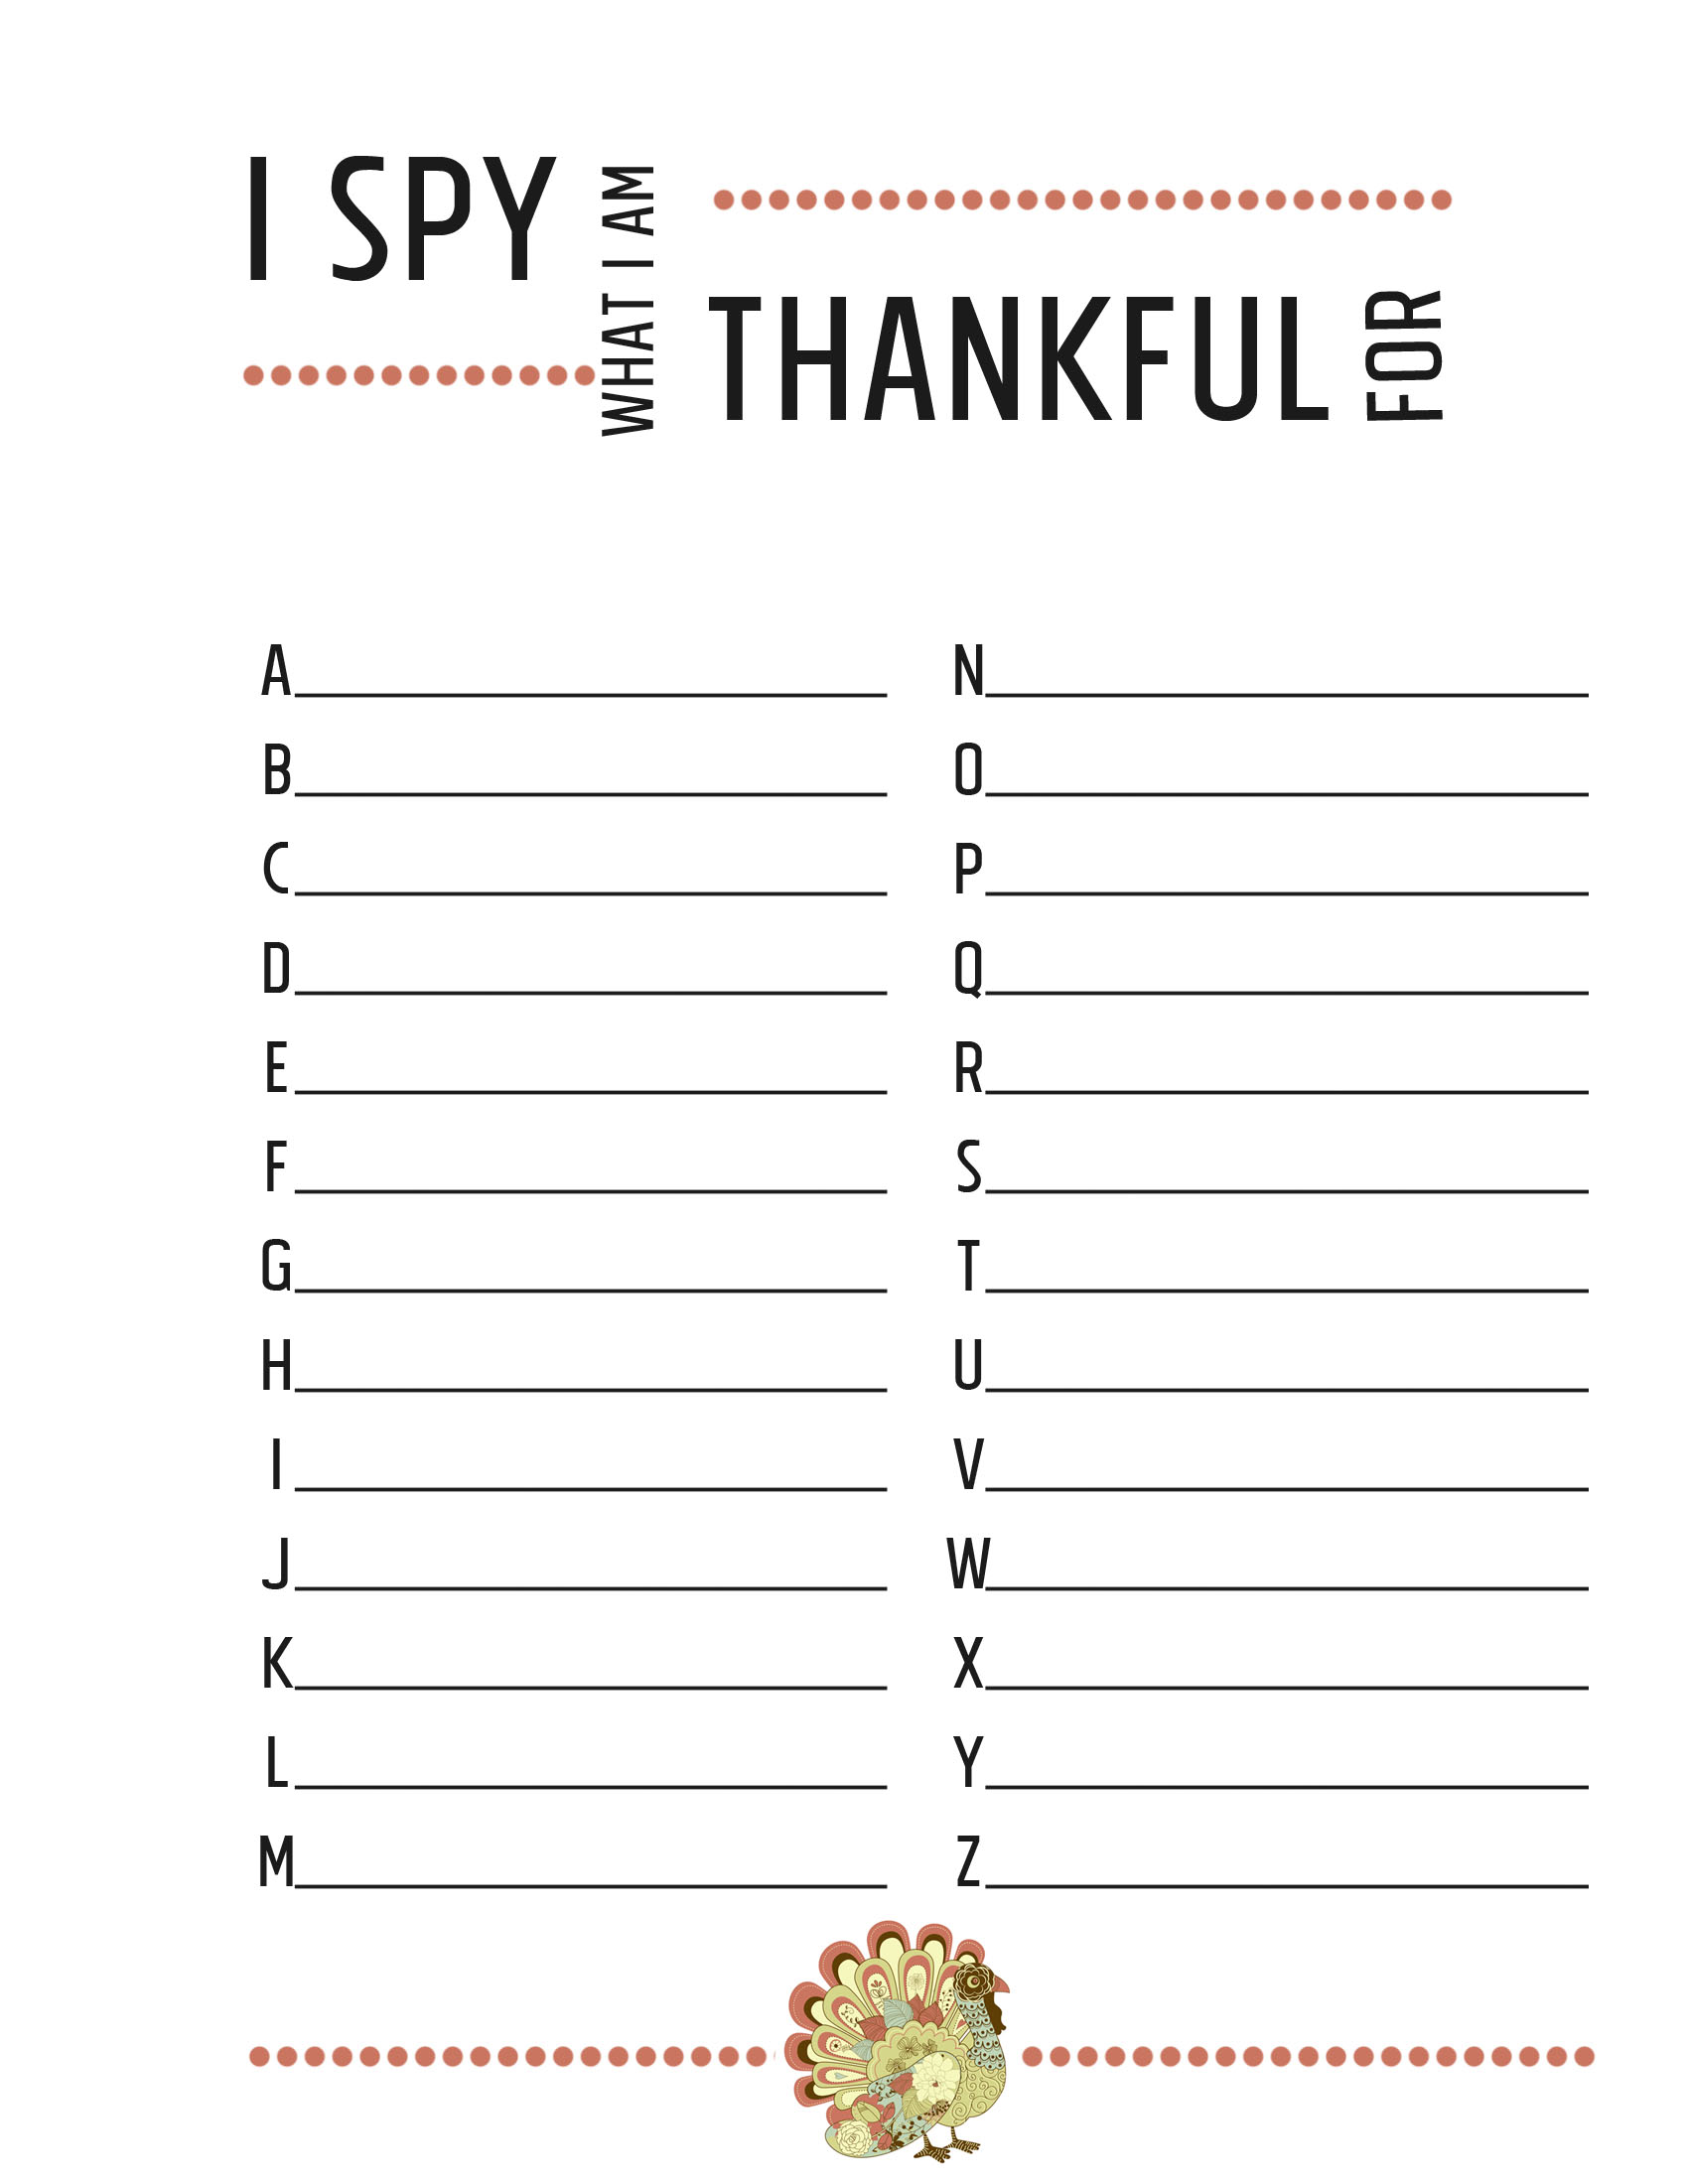 Free Printable Spy Worksheet